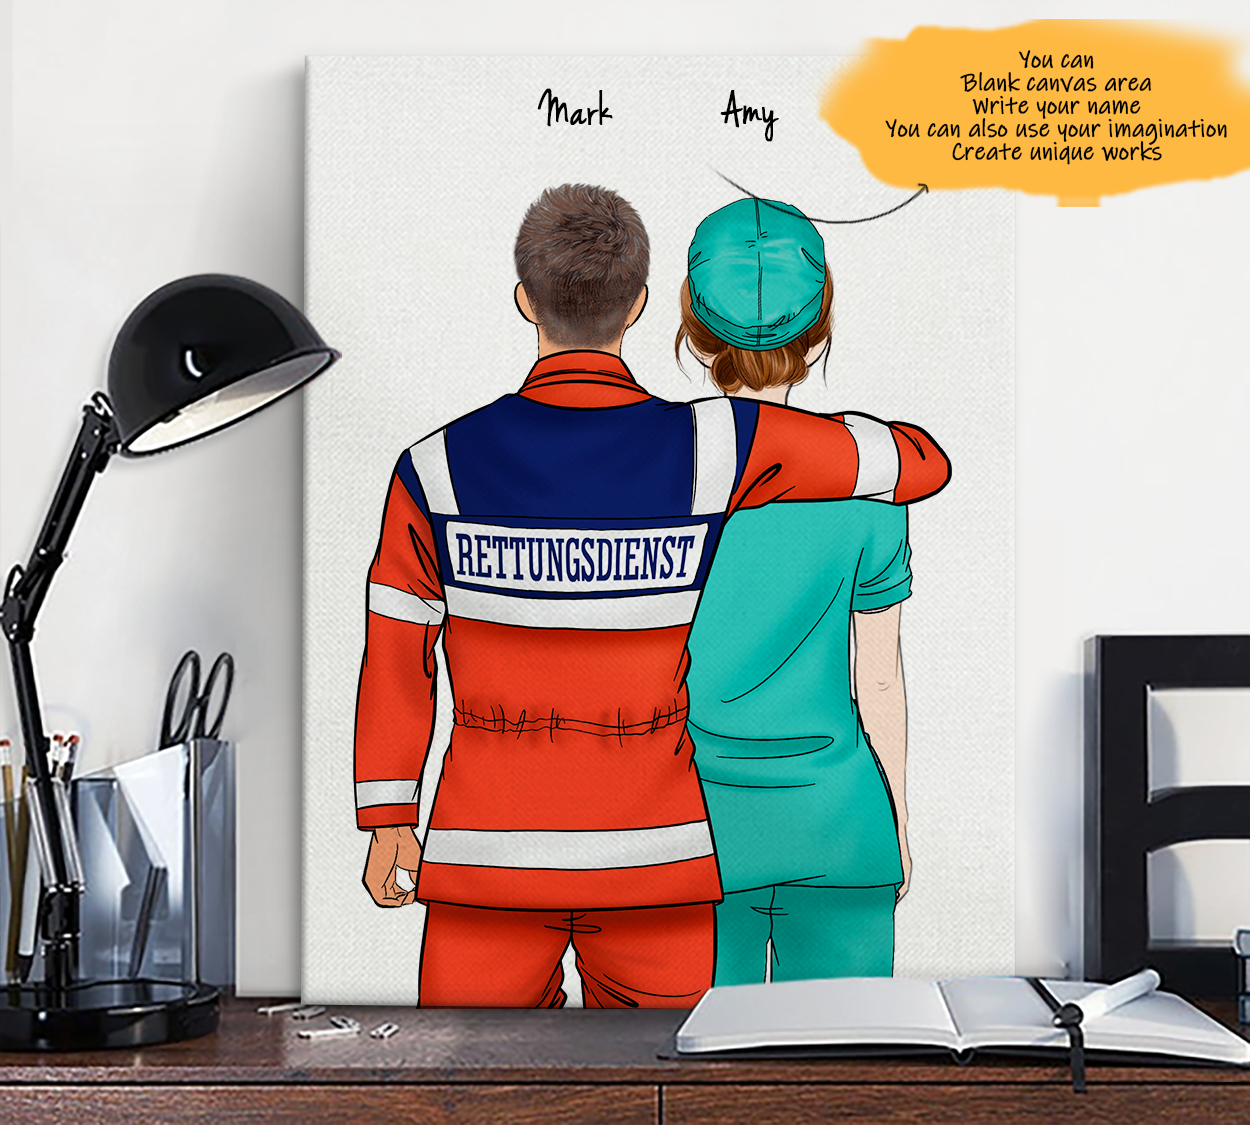 He is My Friend! Hand Draw Custom Canvas-Print Gift AmbulanceDriverGermany-Tan&Nurse2